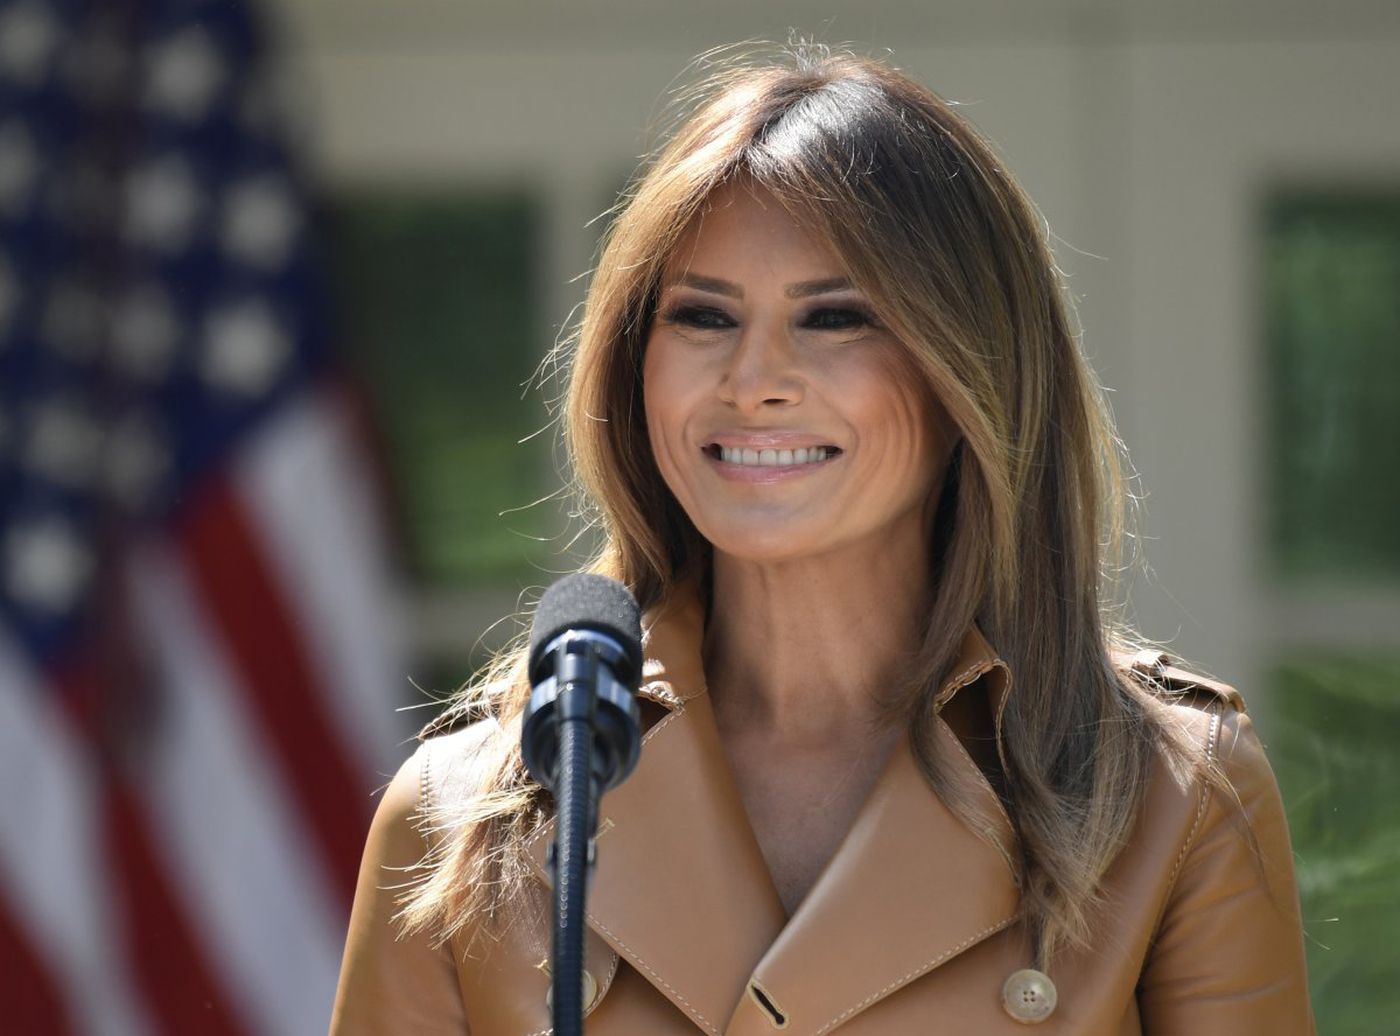 First Lady Melania Trump returns to White House following five-day hospital stay https://t.co/N8w1tRQo1L https://t.co/aP59IhC8NF